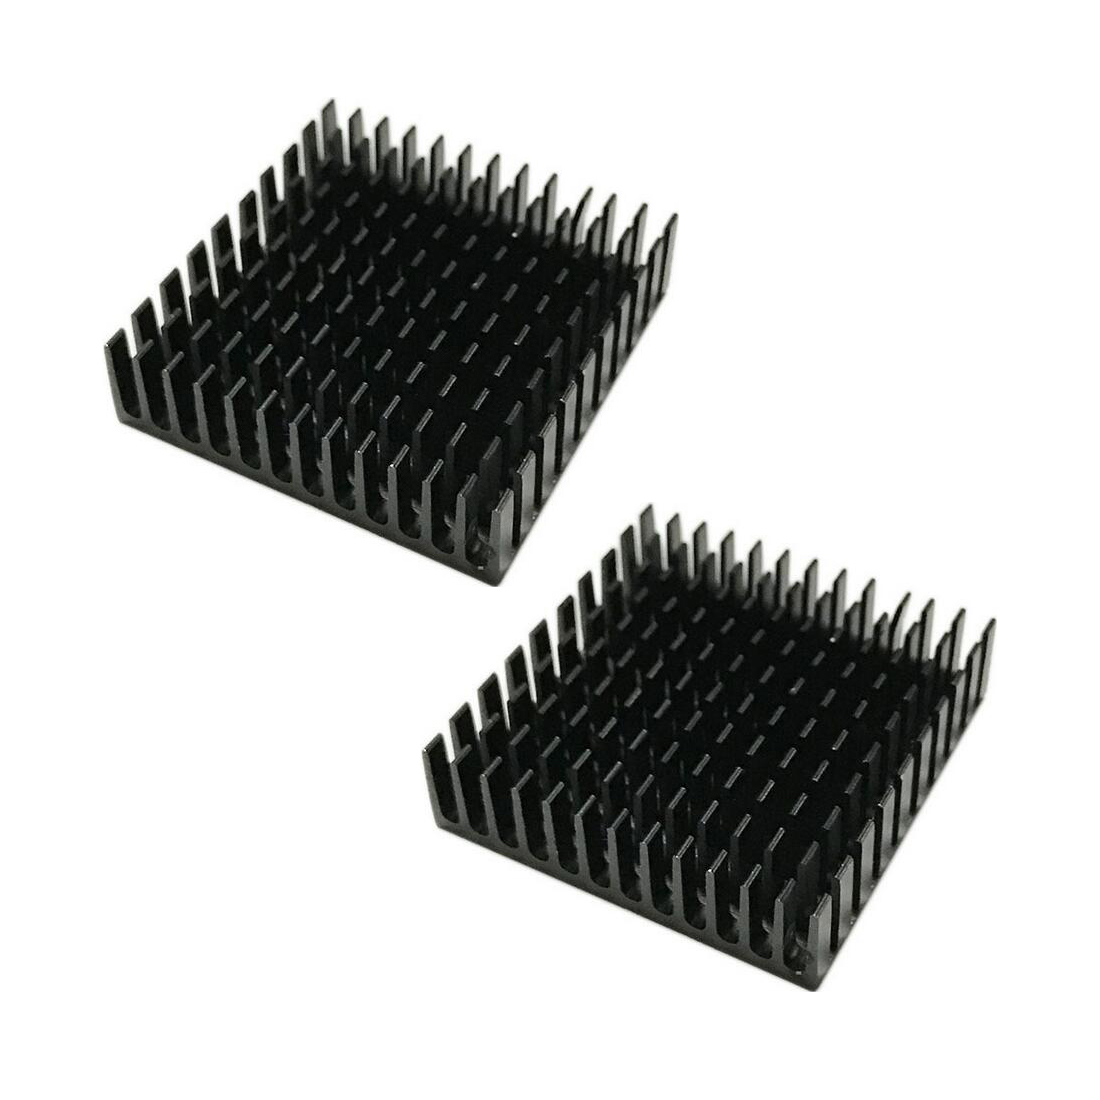 NOYOKERE Cooling  40mm*40mm*11mm DIY Cooler Aluminum Heatsink Cooling Fin Heat Sink For LED Power Memory Chip IC Black Color